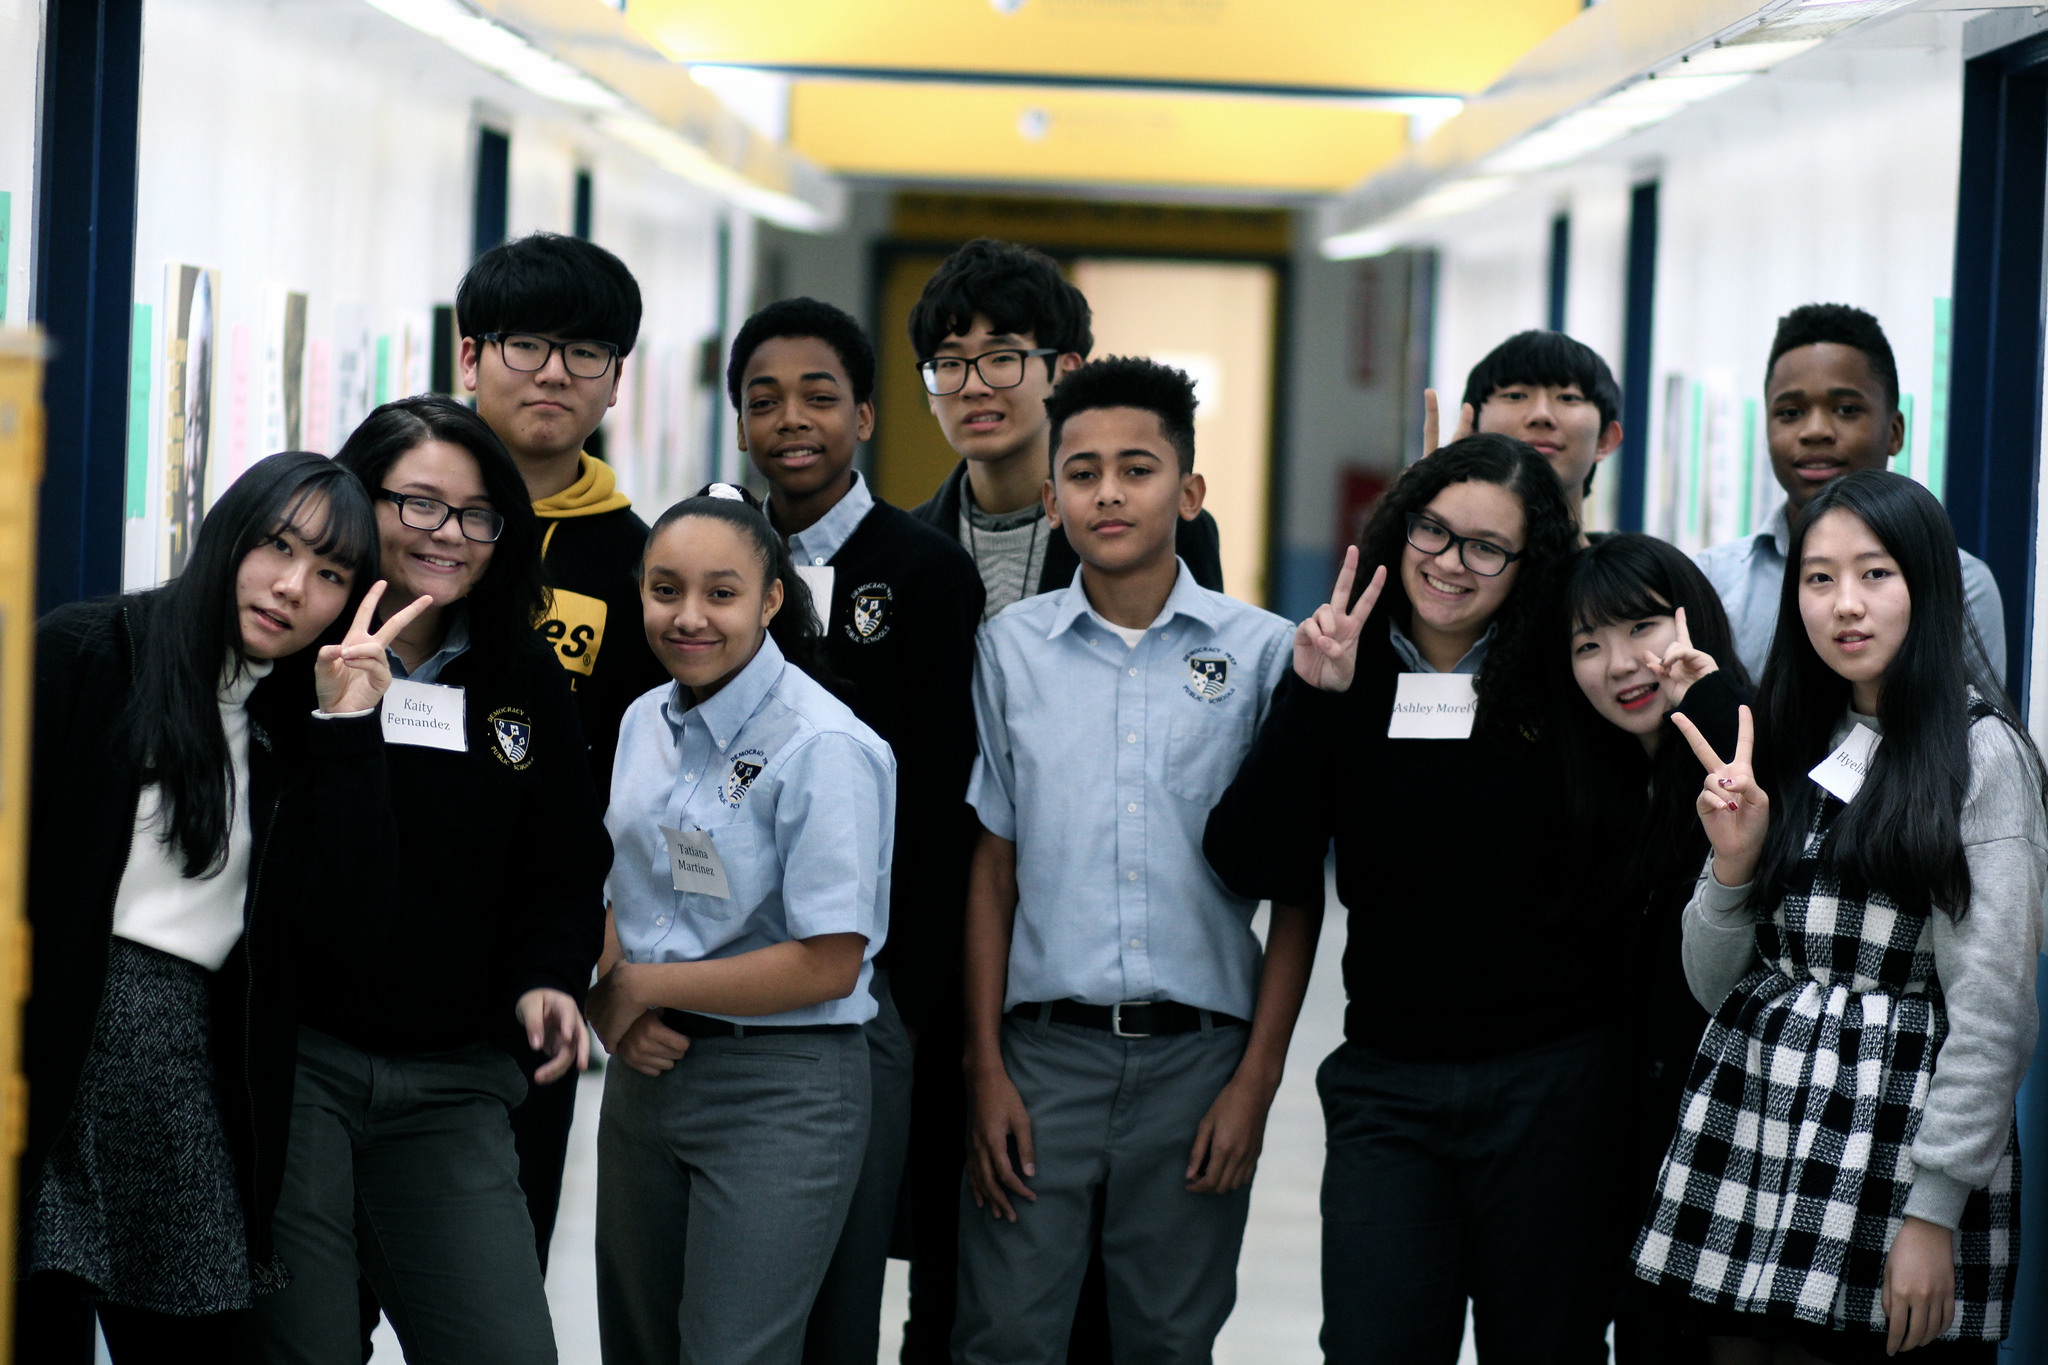 cultural exchange students from korean high school visit